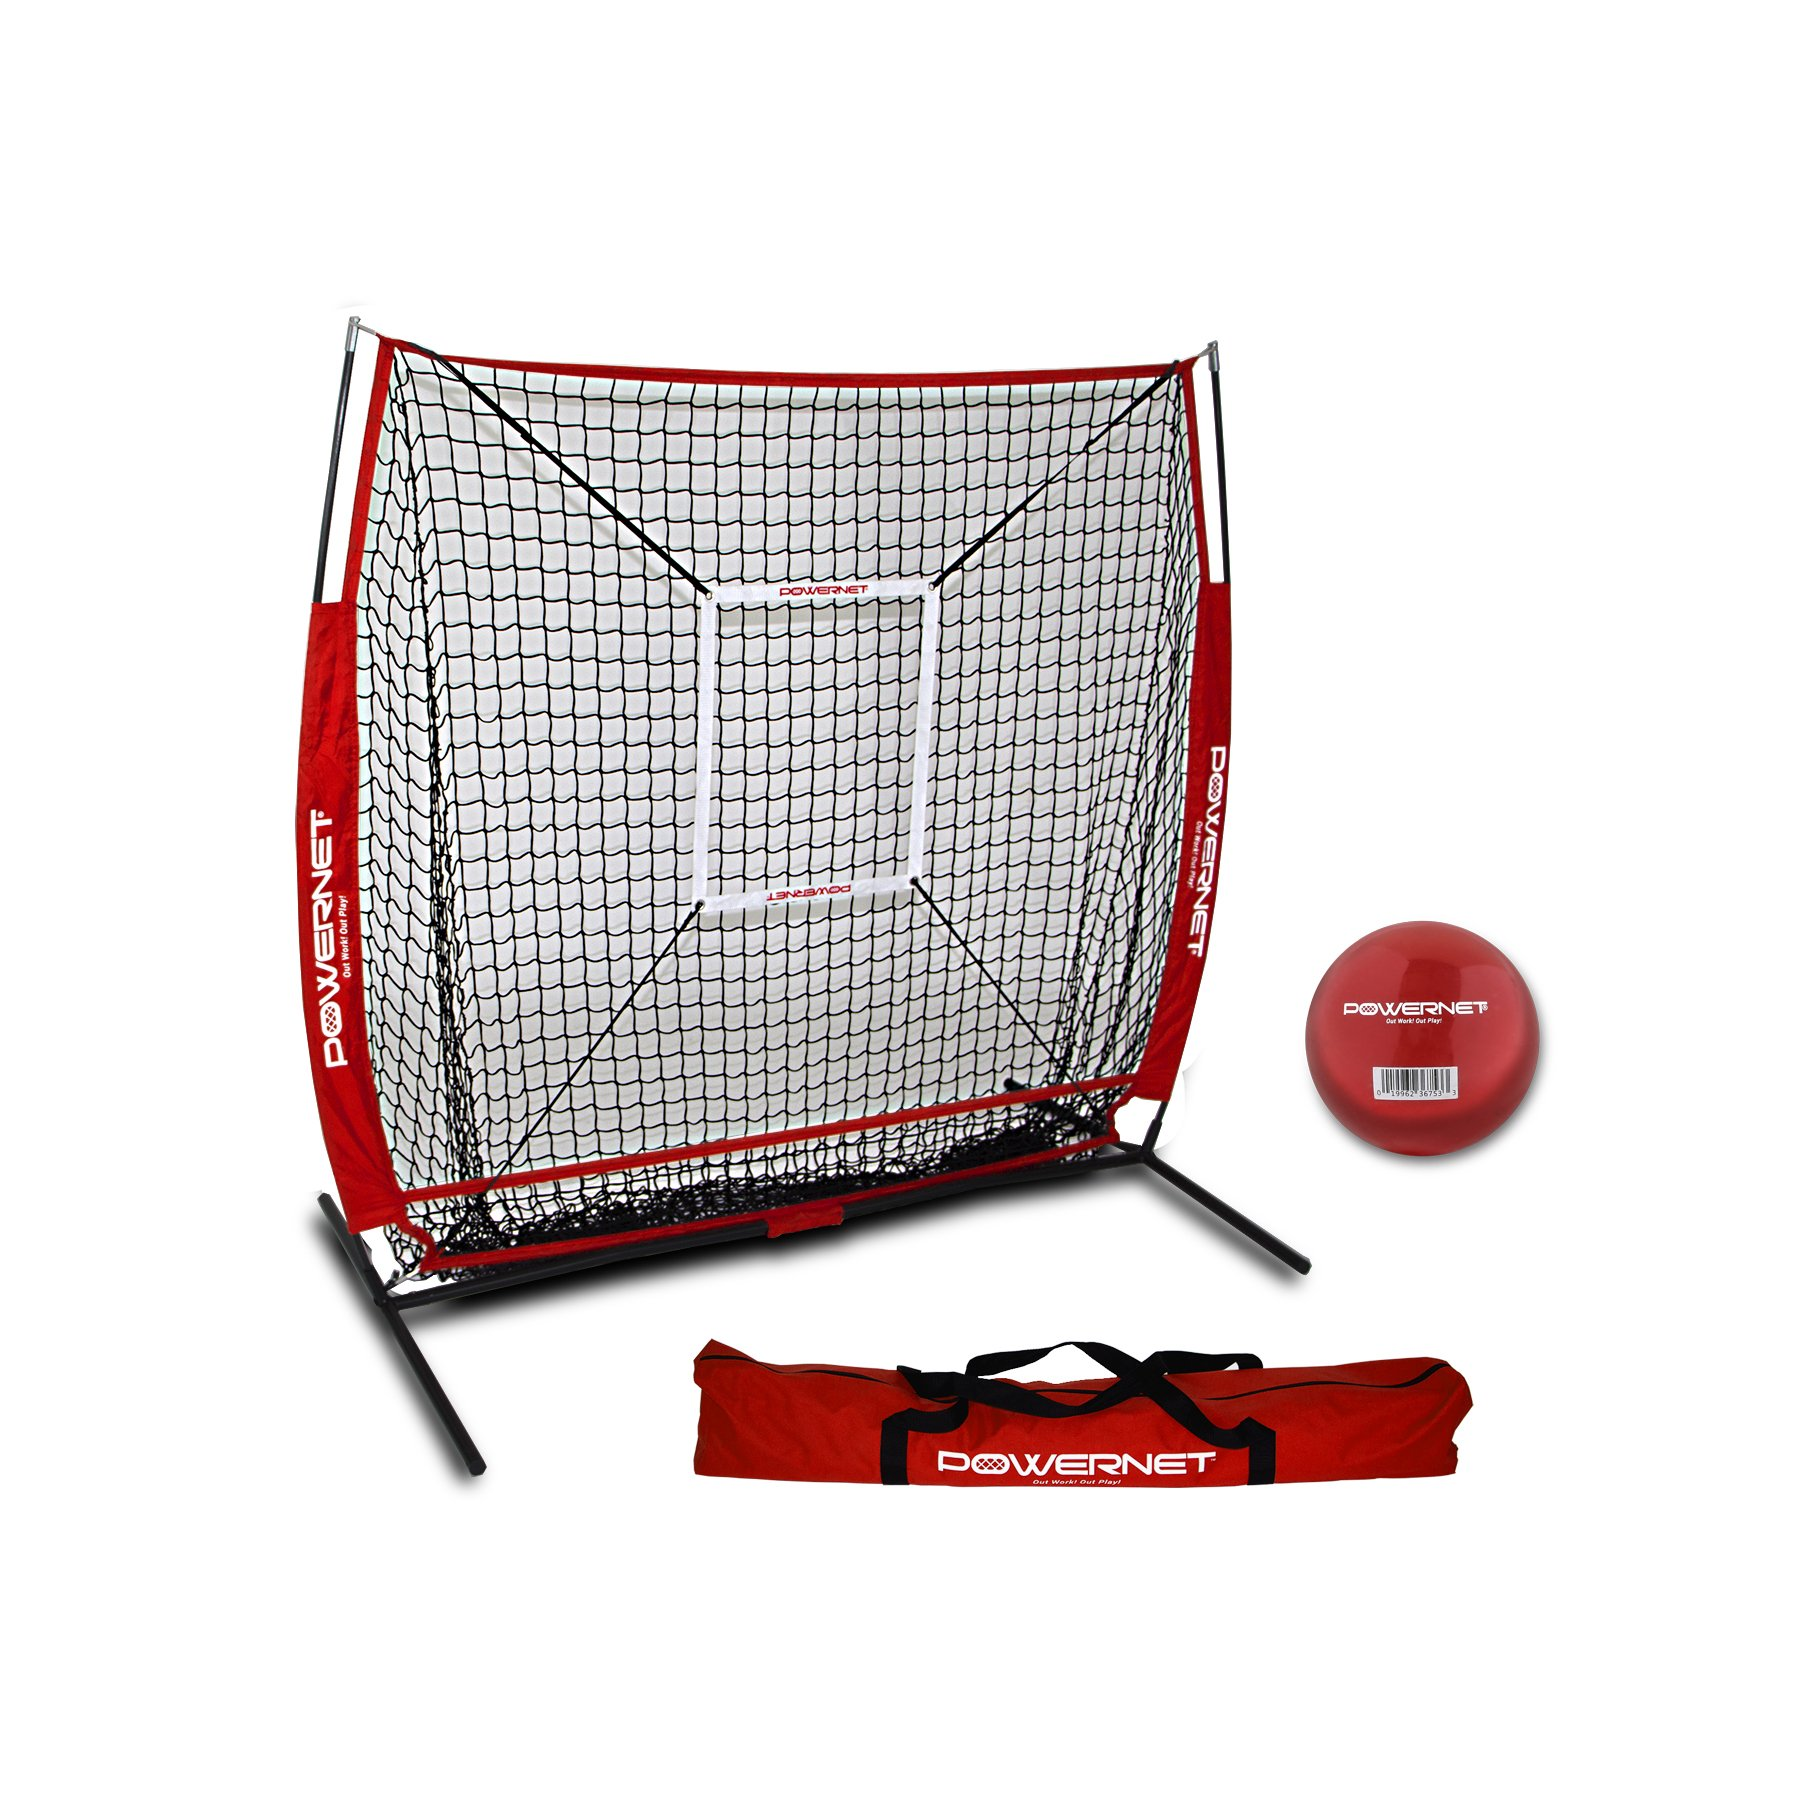 PowerNet 5x5 Practice Net + Strike Zone + Weighted Training Ball Bundle (Red) | Baseball Softball Coaching Aid | Compact Lightweight Ultra Portable | Team Color | Batting Screen by PowerNet